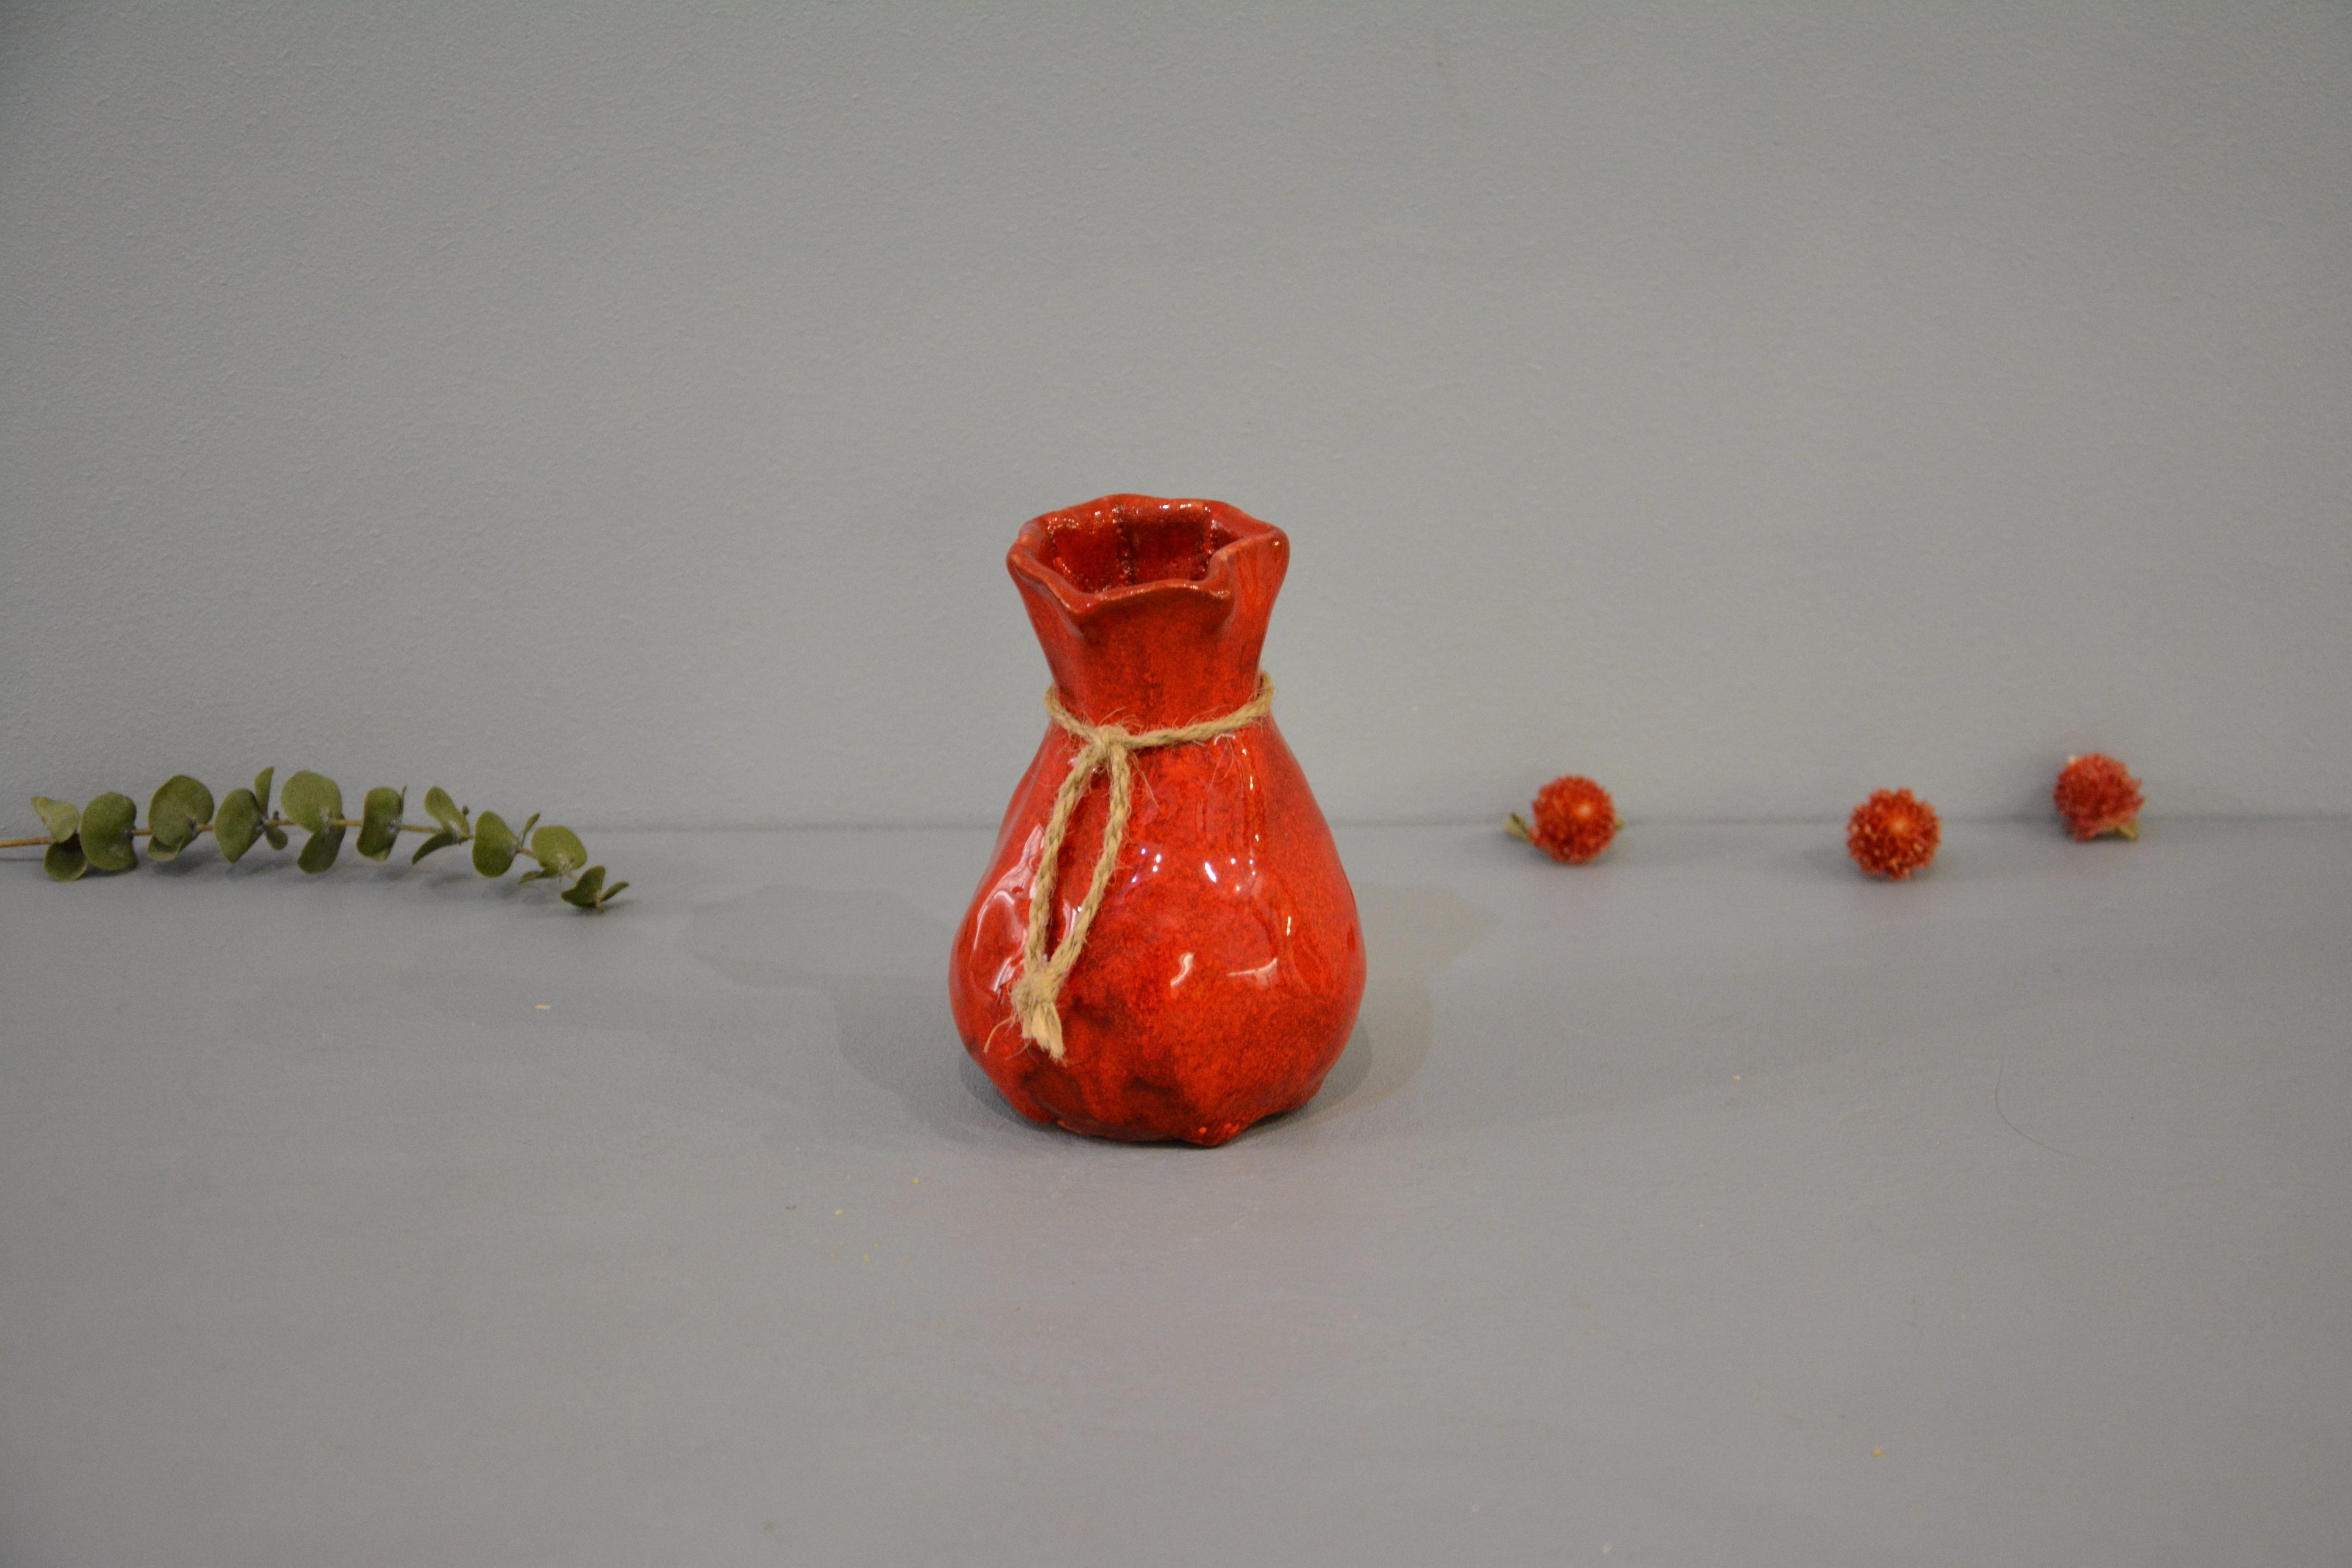 Candle vase «Red Bagful», height - 12 cm, color - red. Photo 1436.